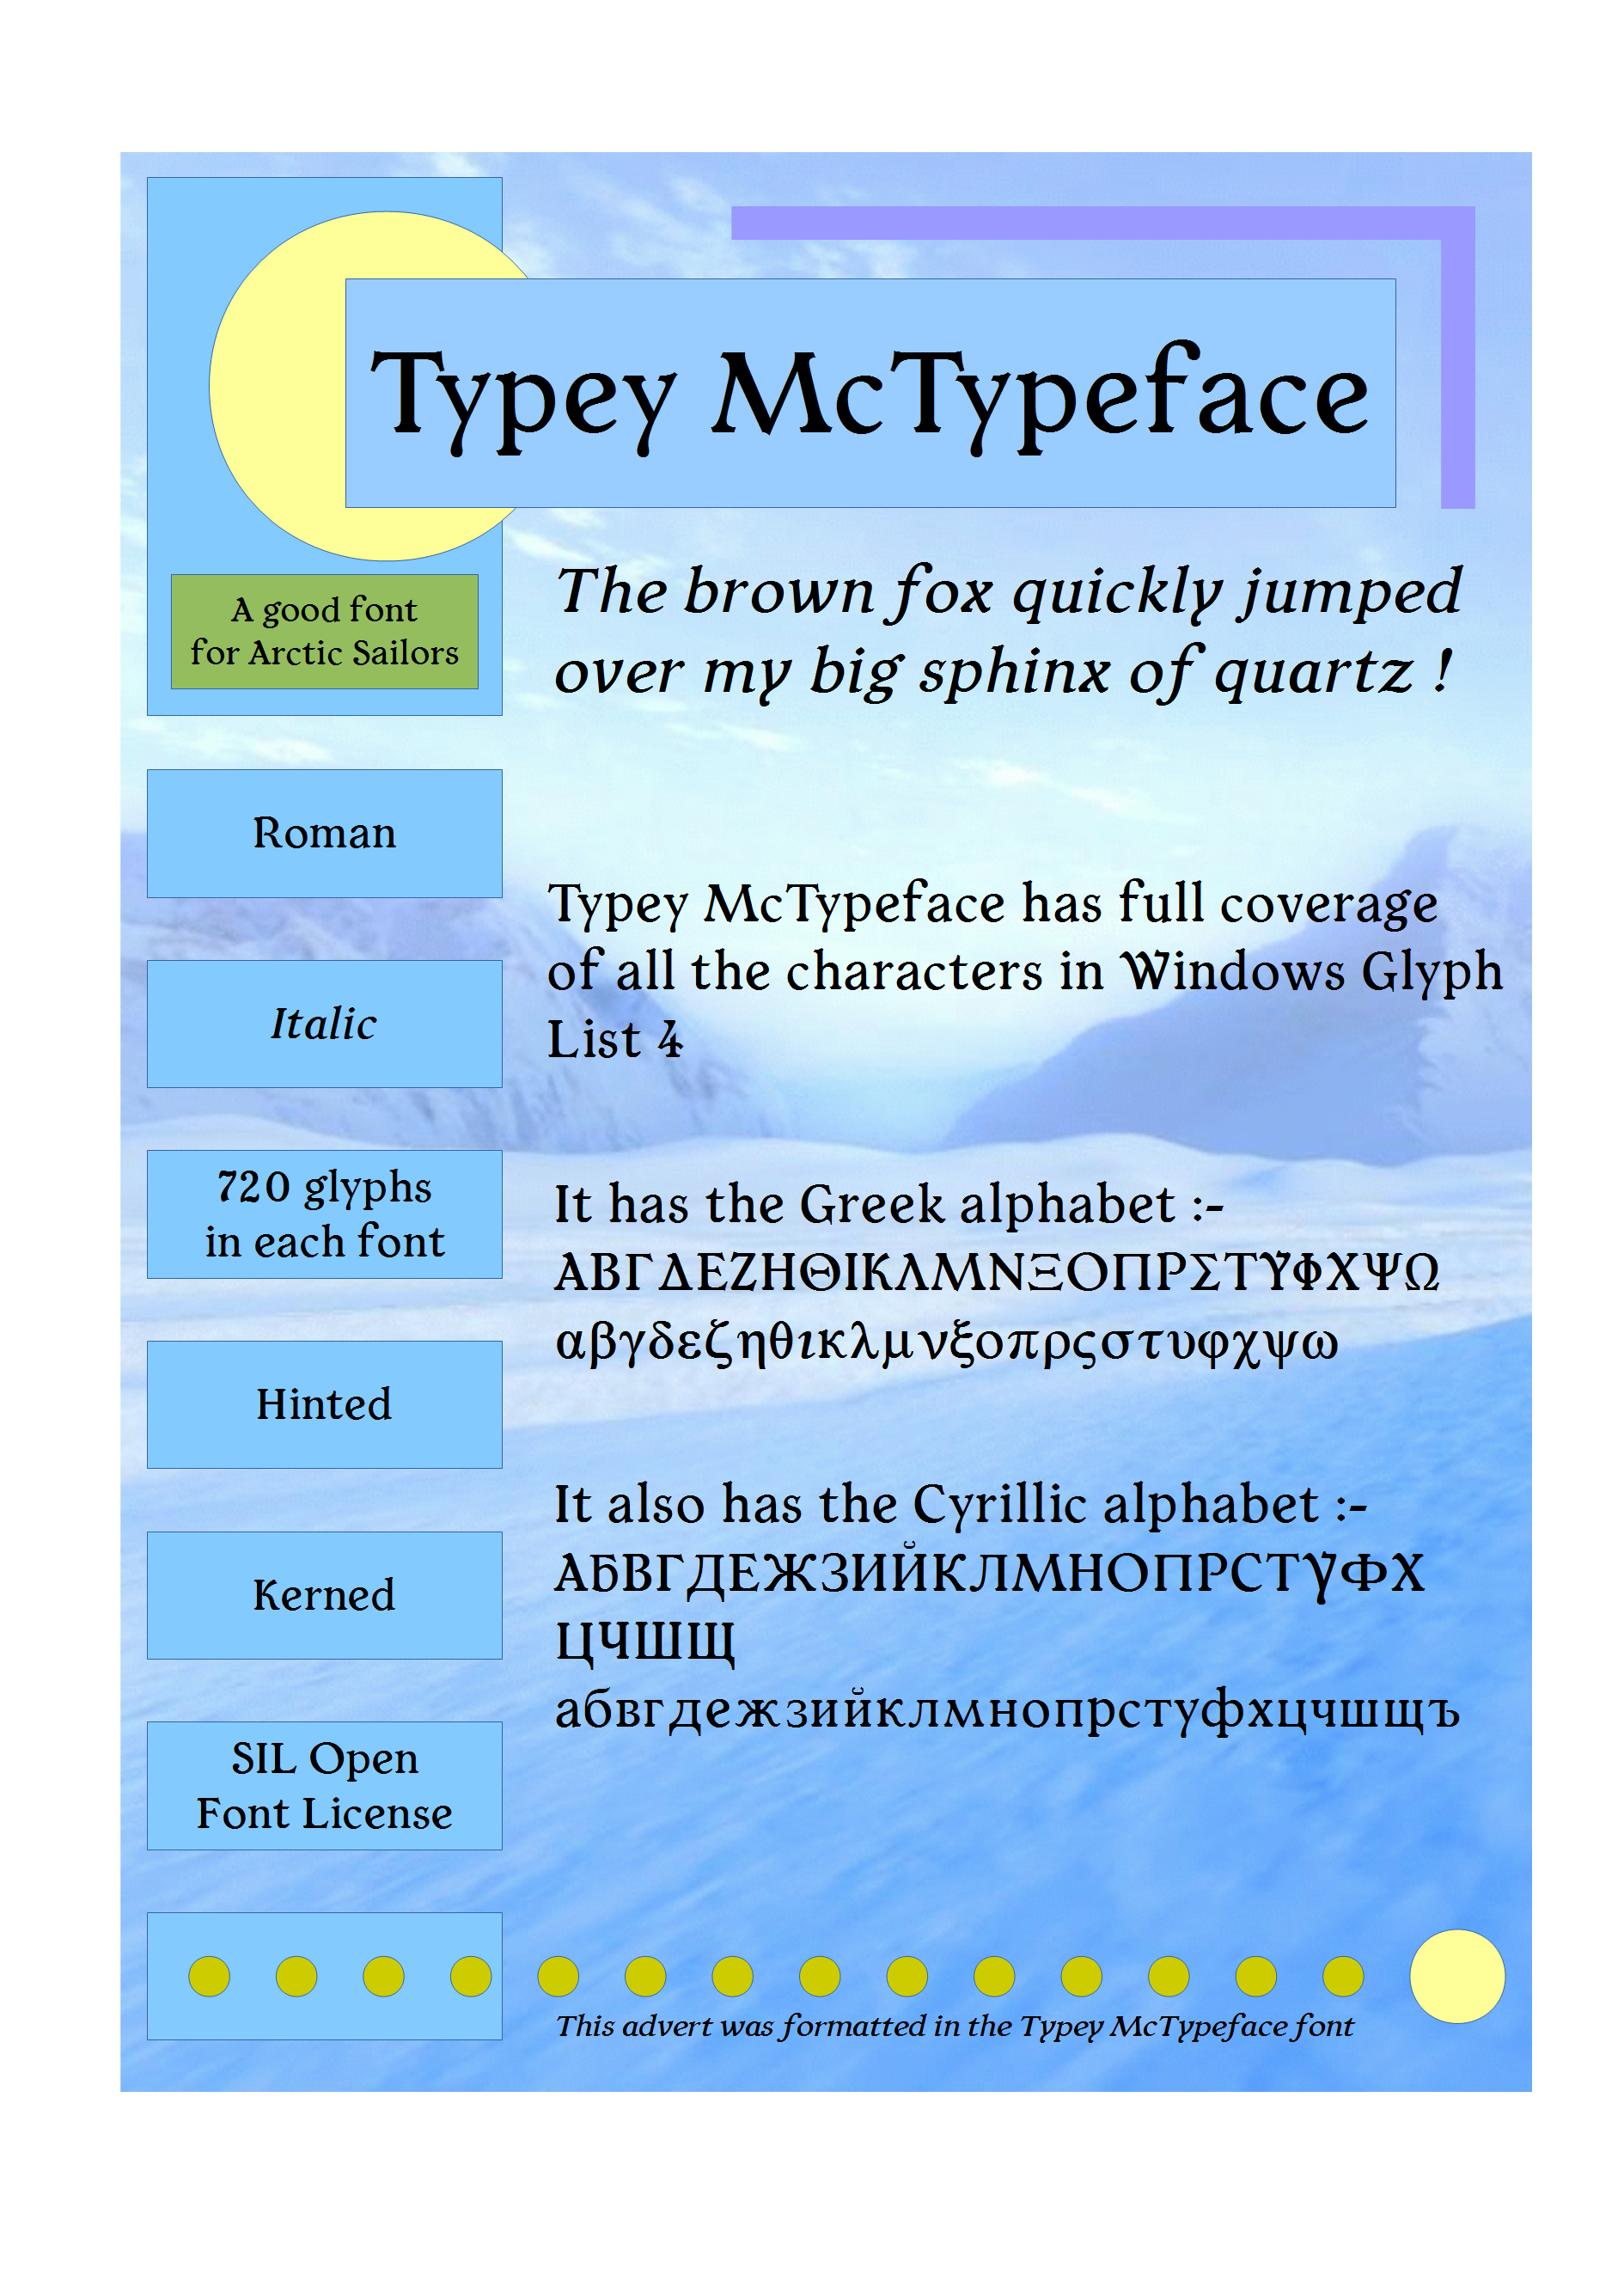 Typey McTypeface by PJMiller